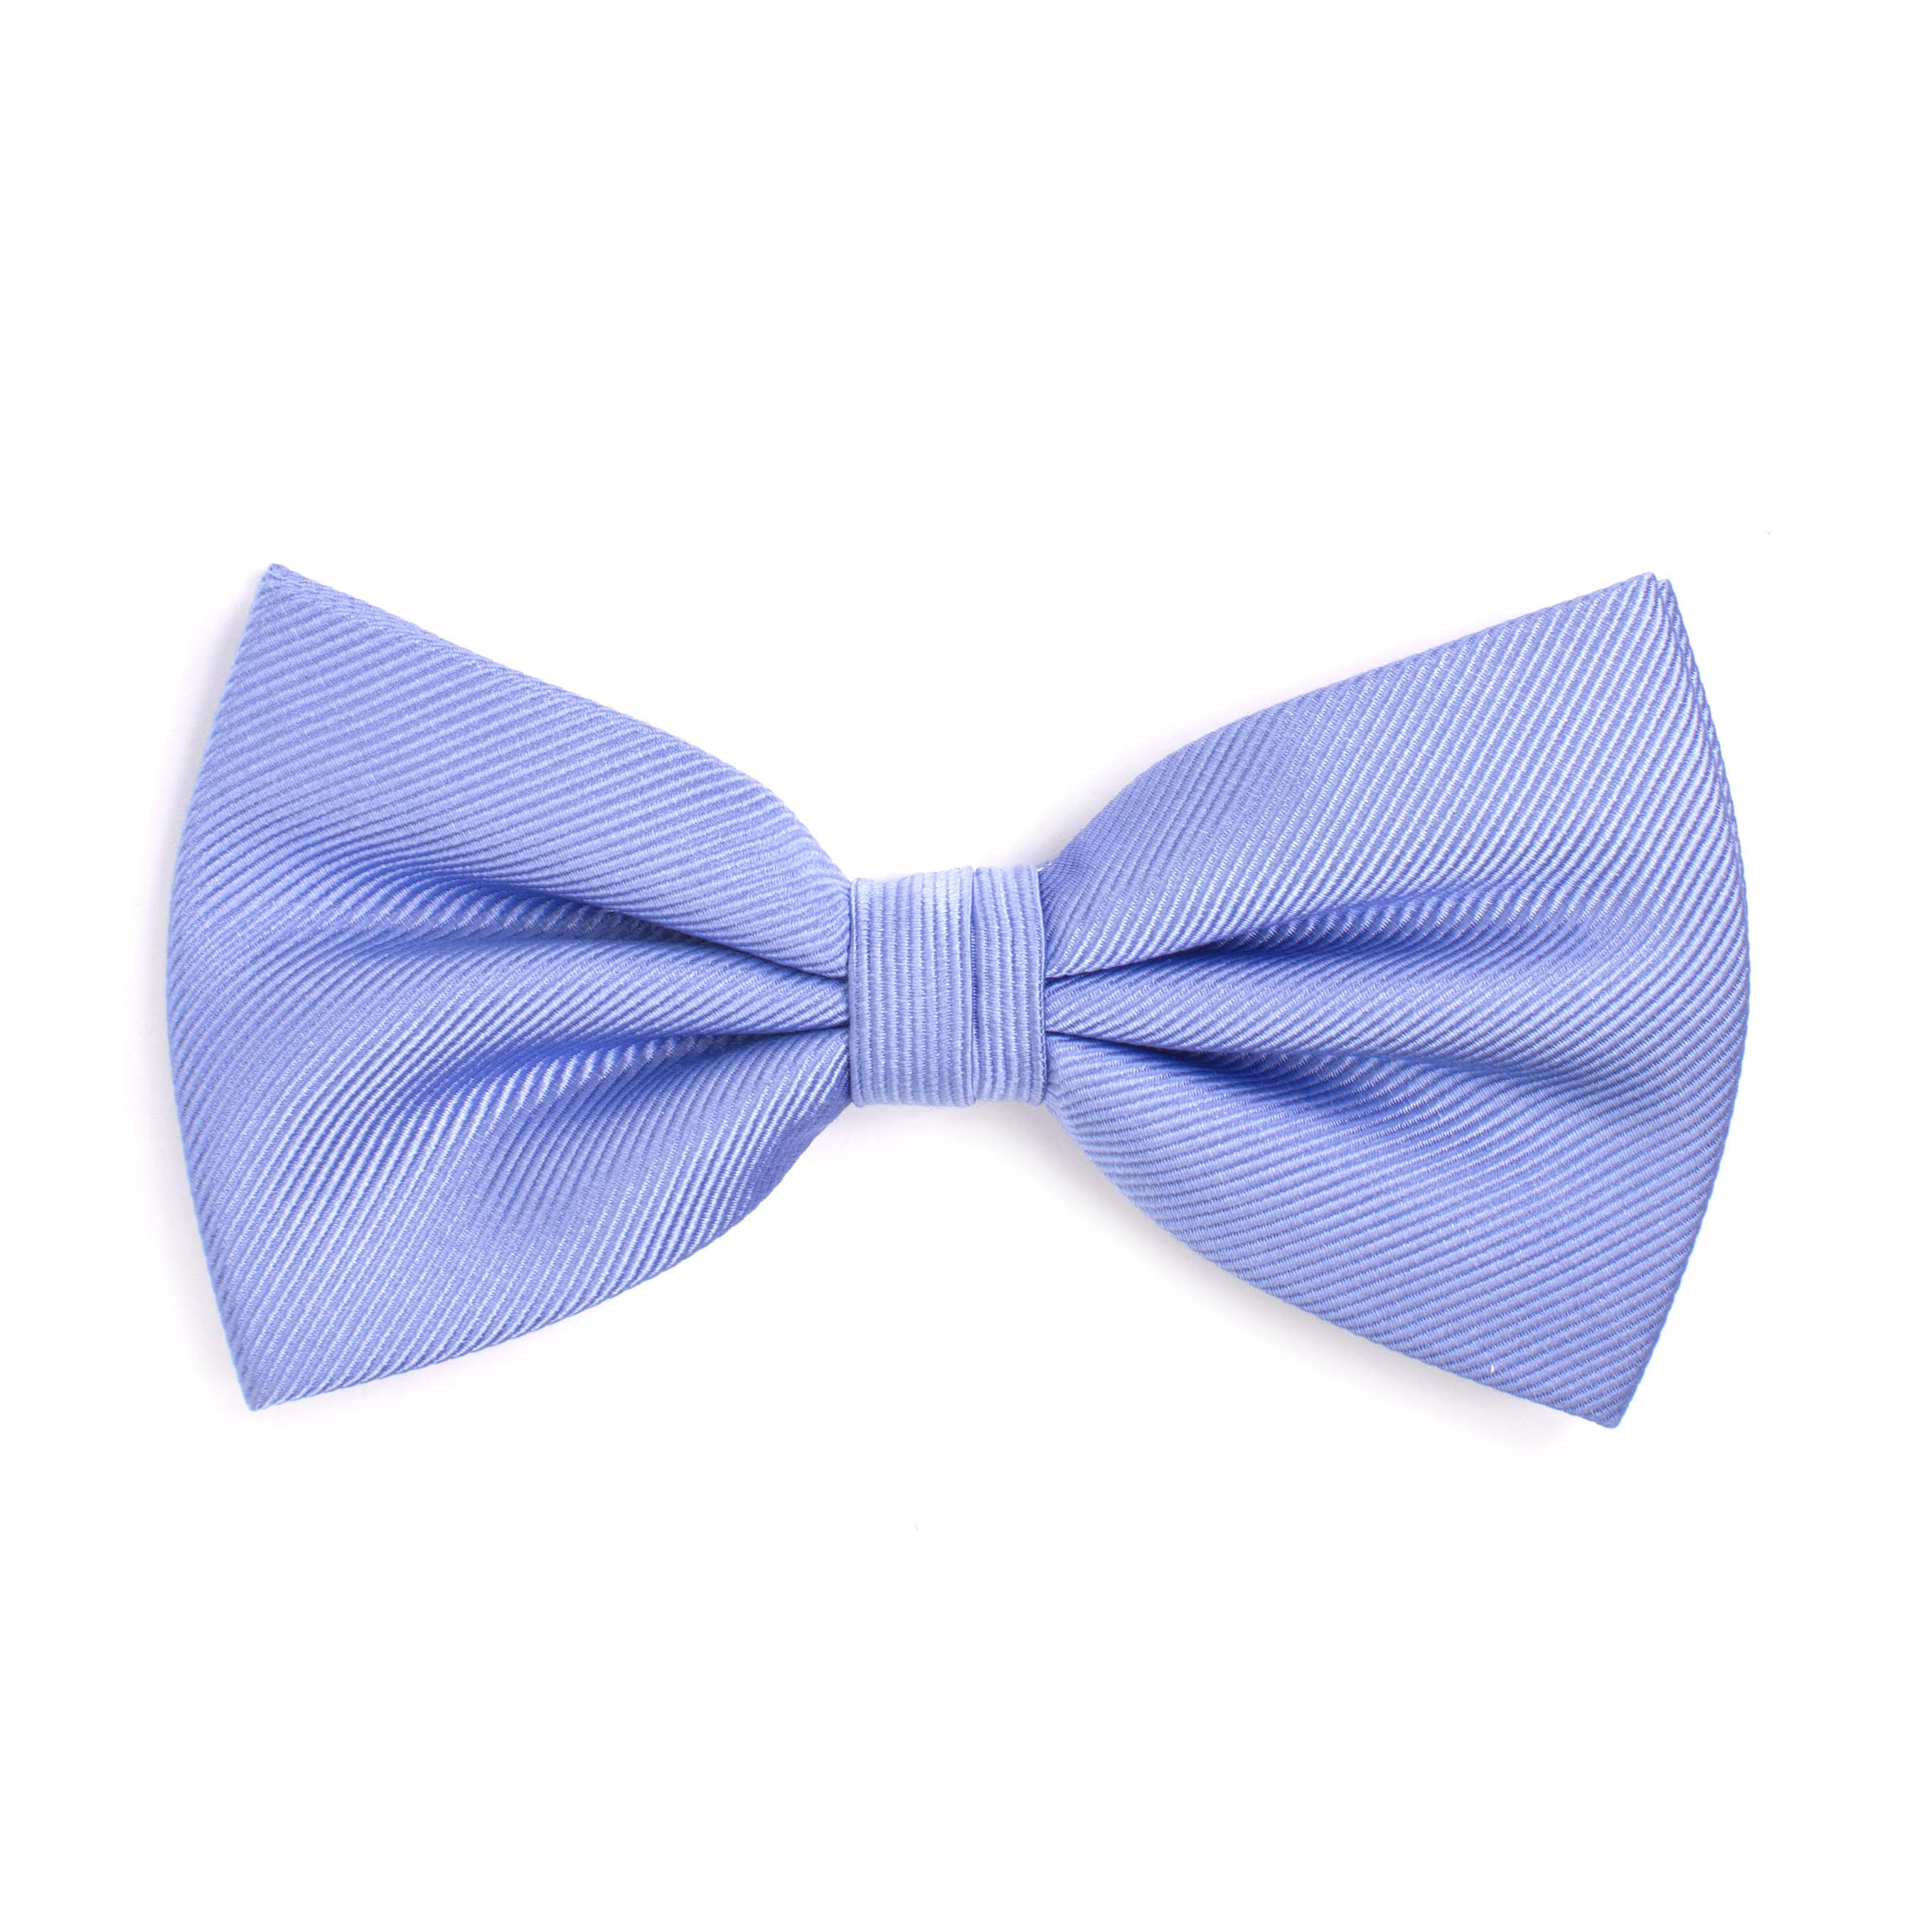 Bow tie classic ribbed sky blue